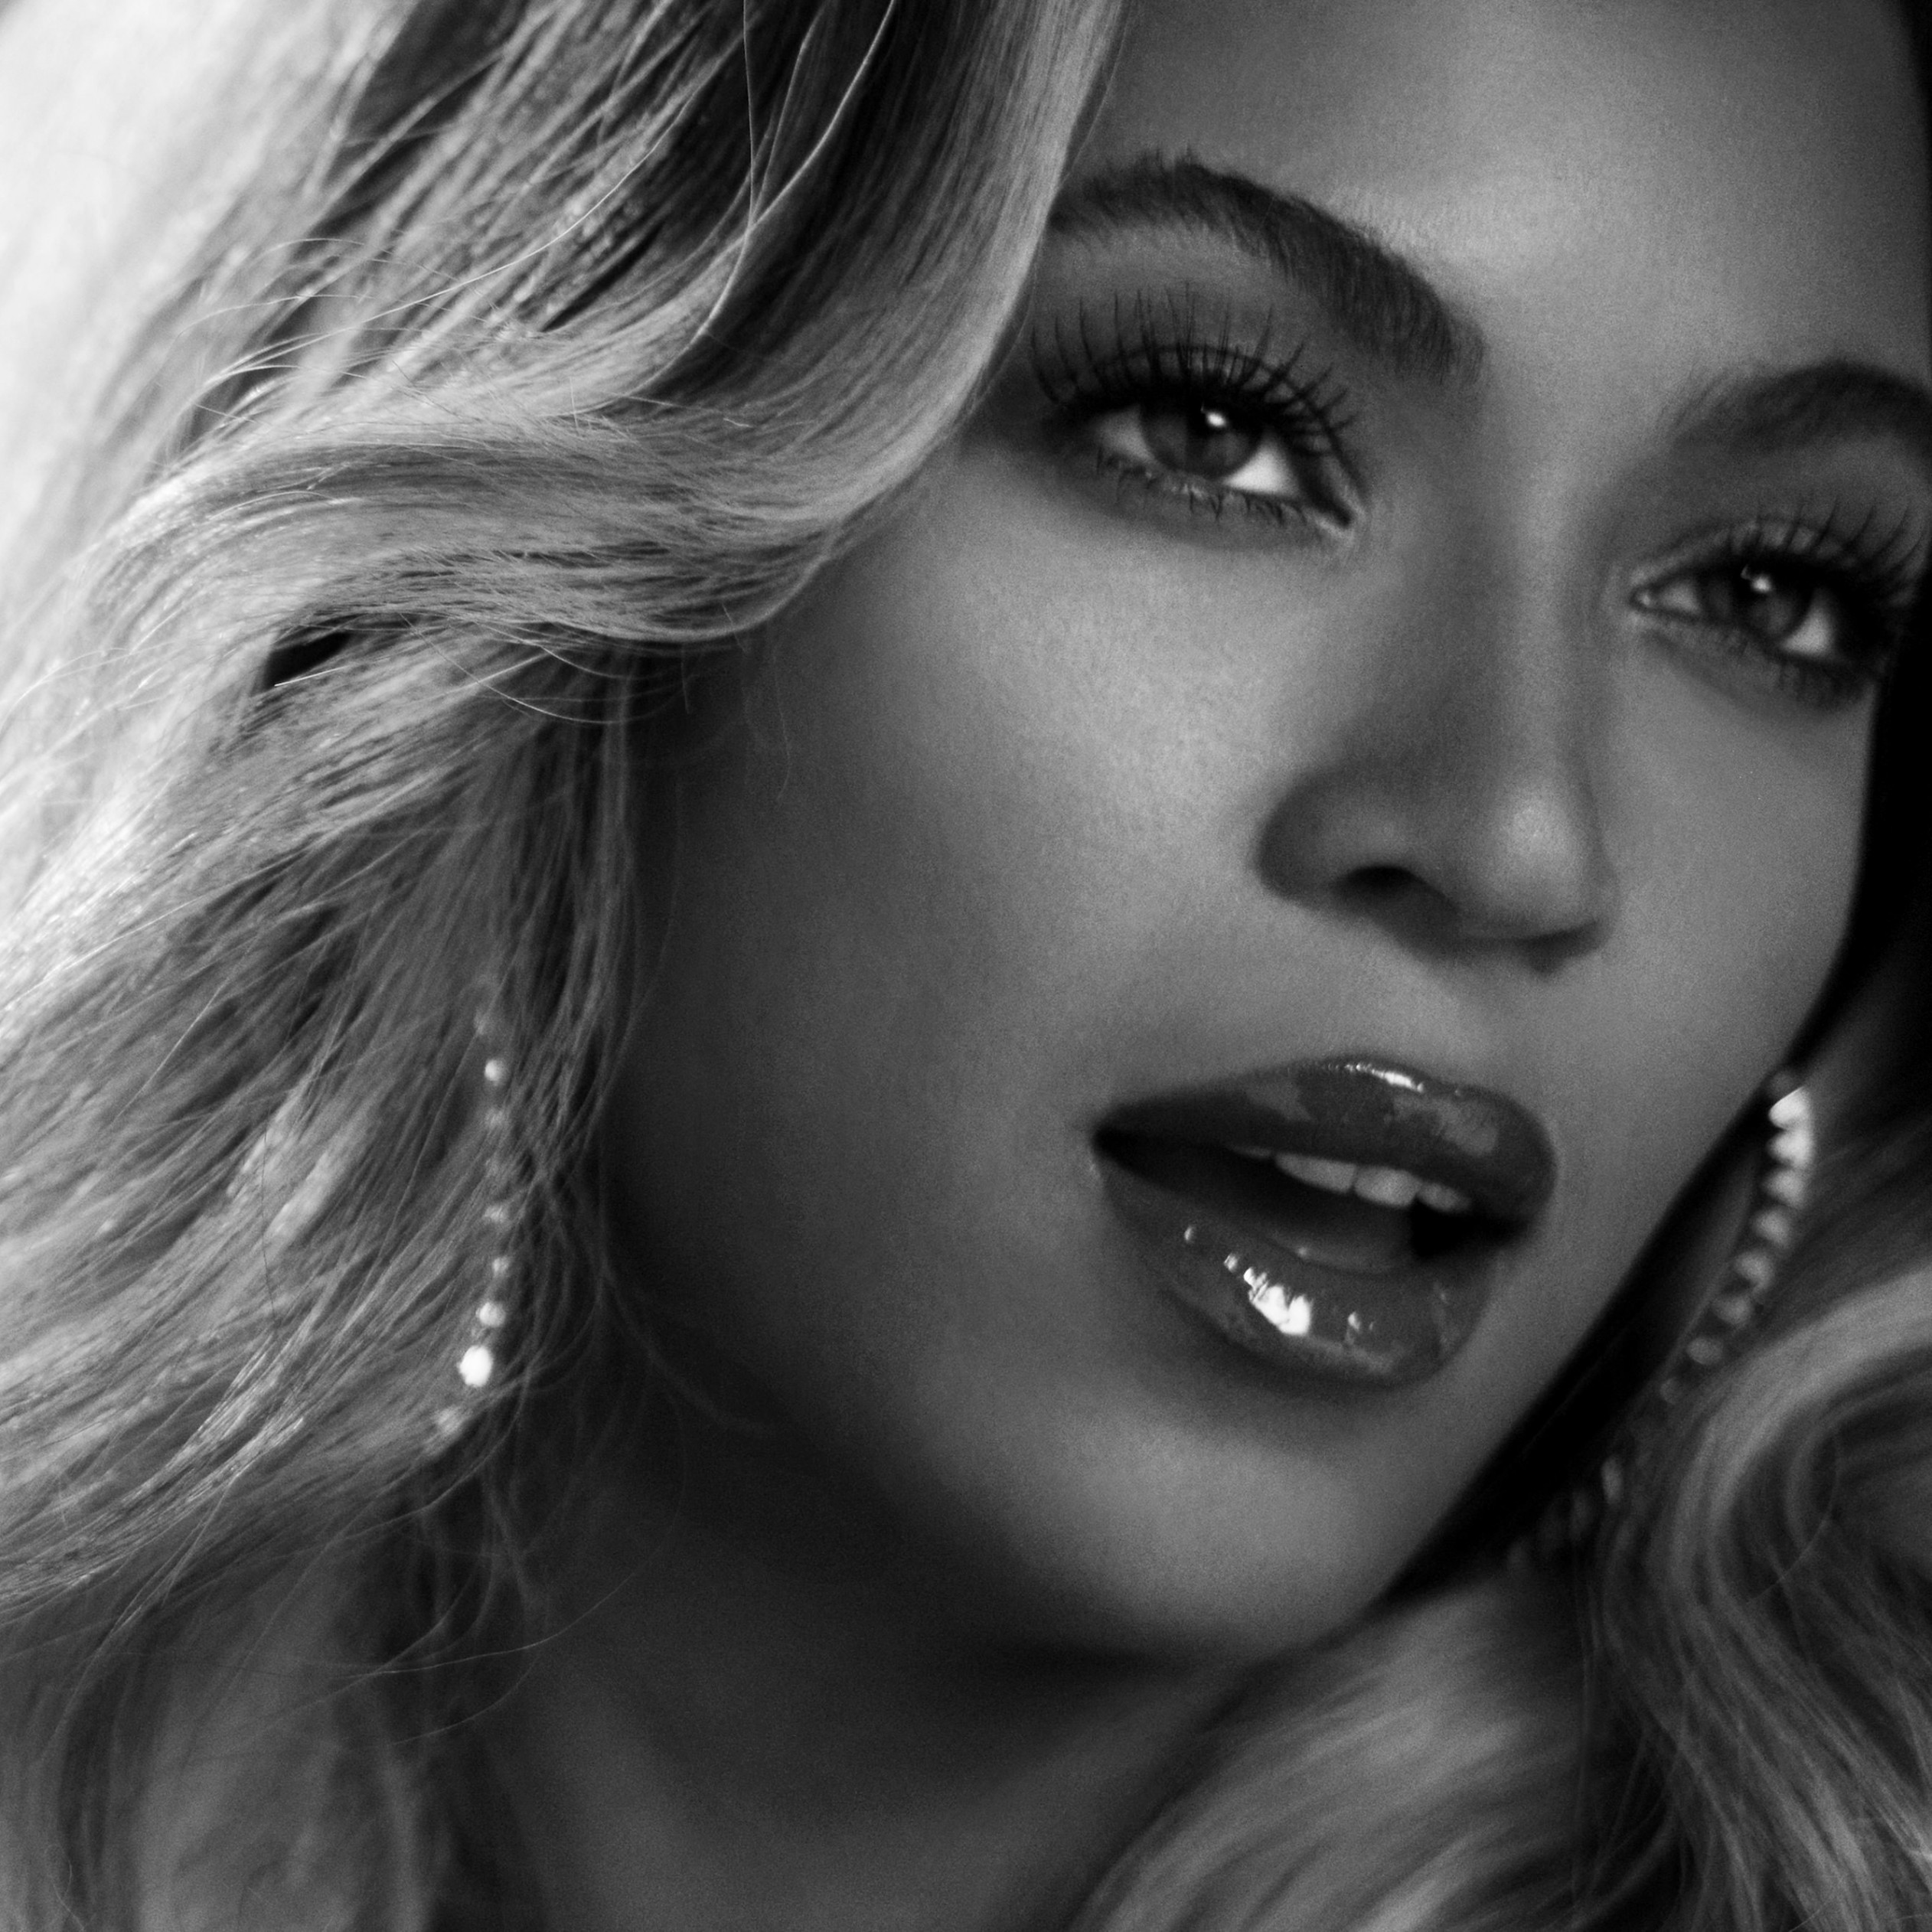 Beyonce in Black & White Wallpaper for Apple iPad mini 2